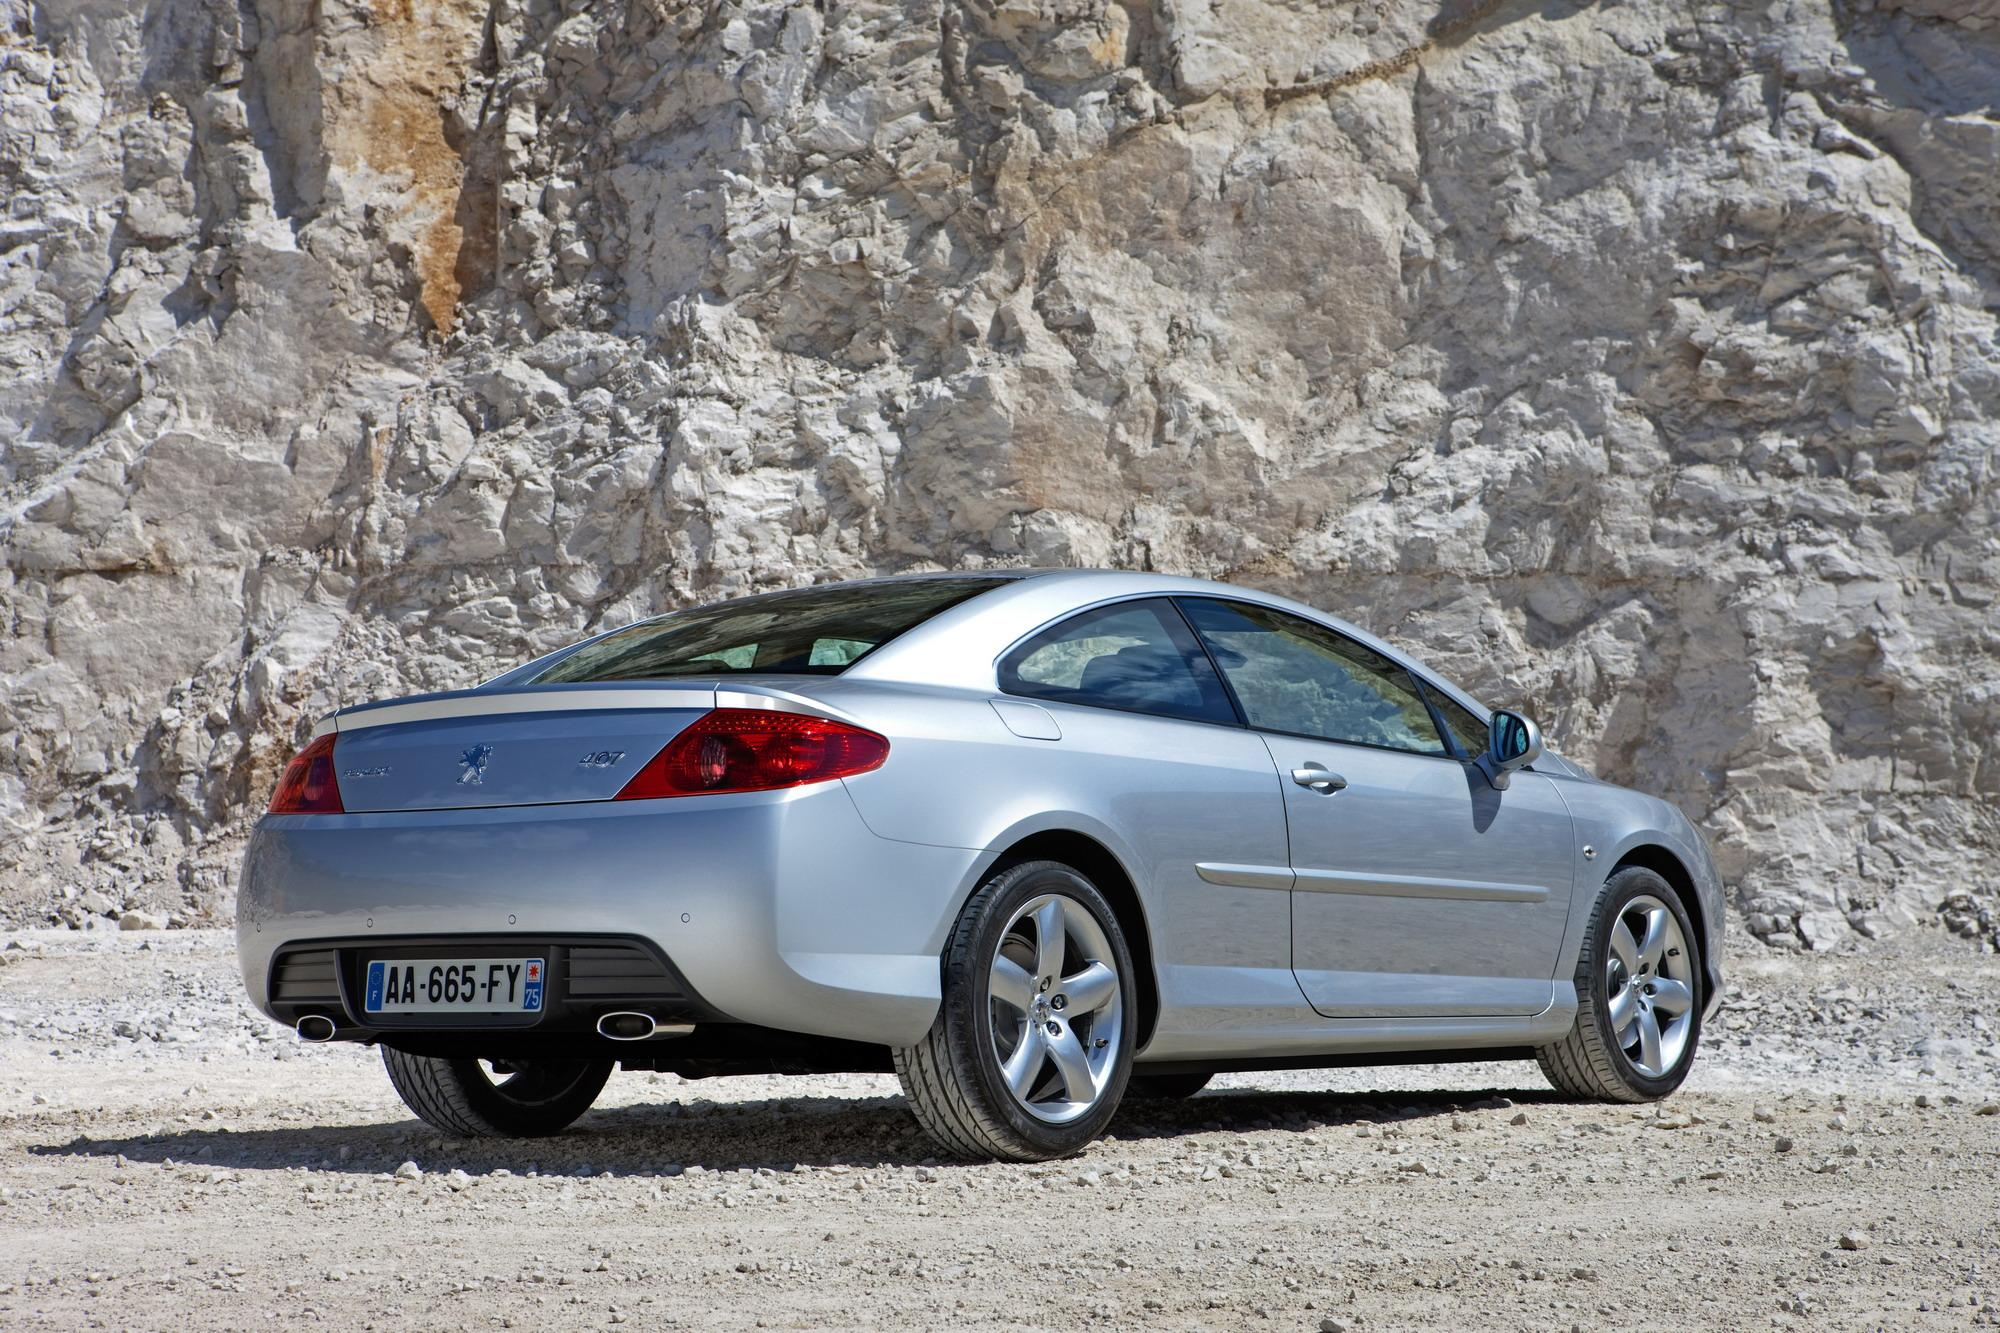 2009 peugeot 407 coupe review top speed. Black Bedroom Furniture Sets. Home Design Ideas